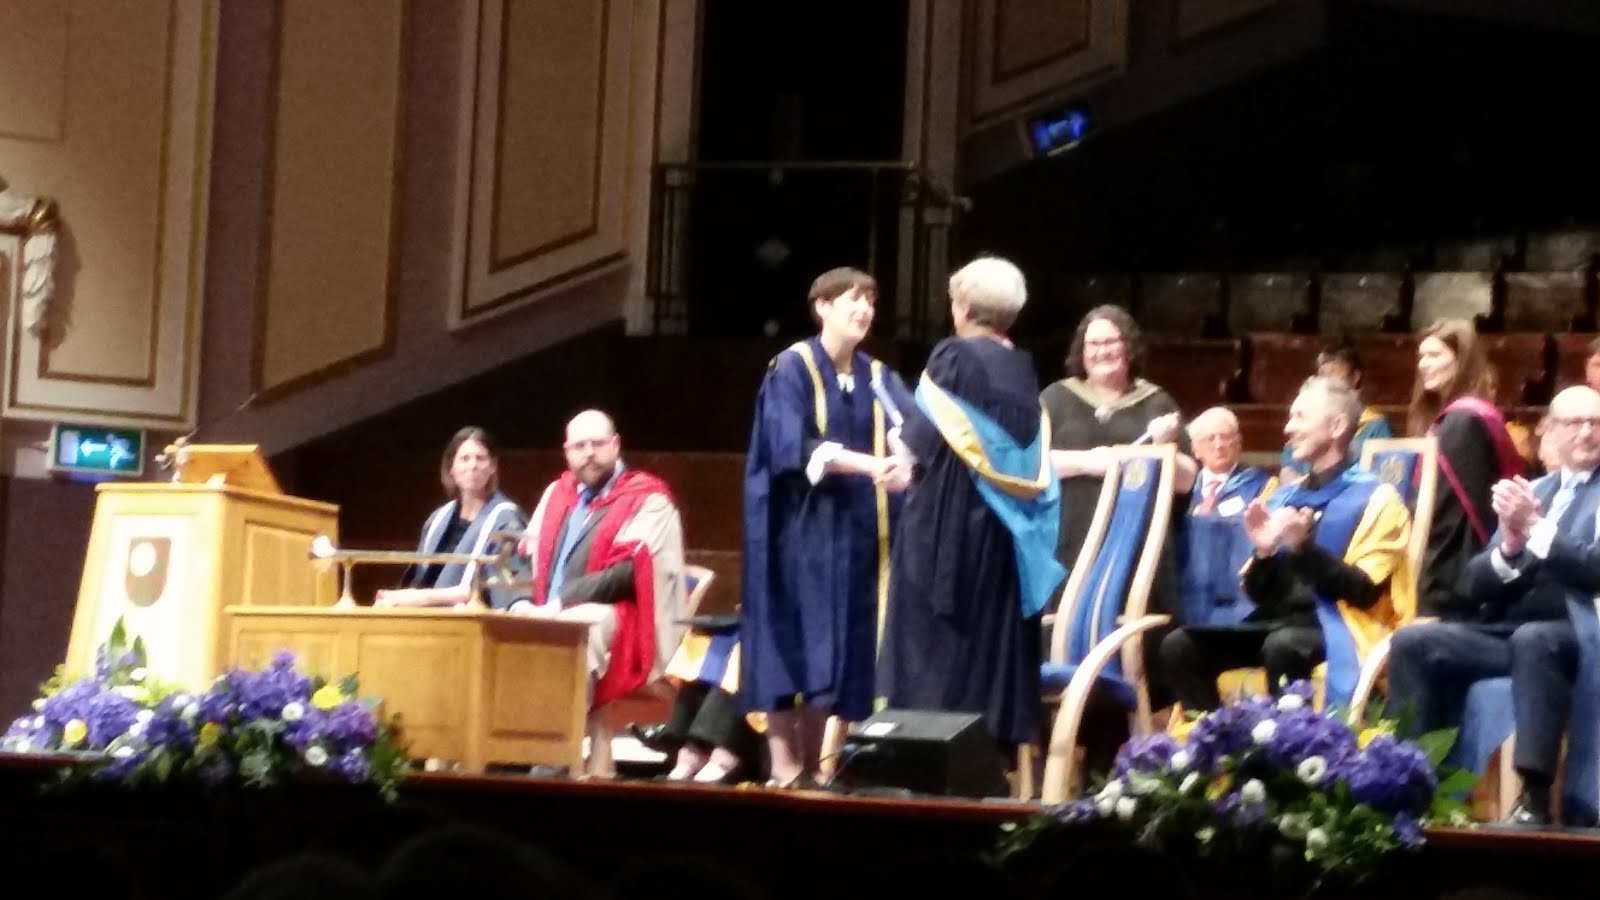 Receiving my B.A. (Hons) Eng. Literature at the age of 67